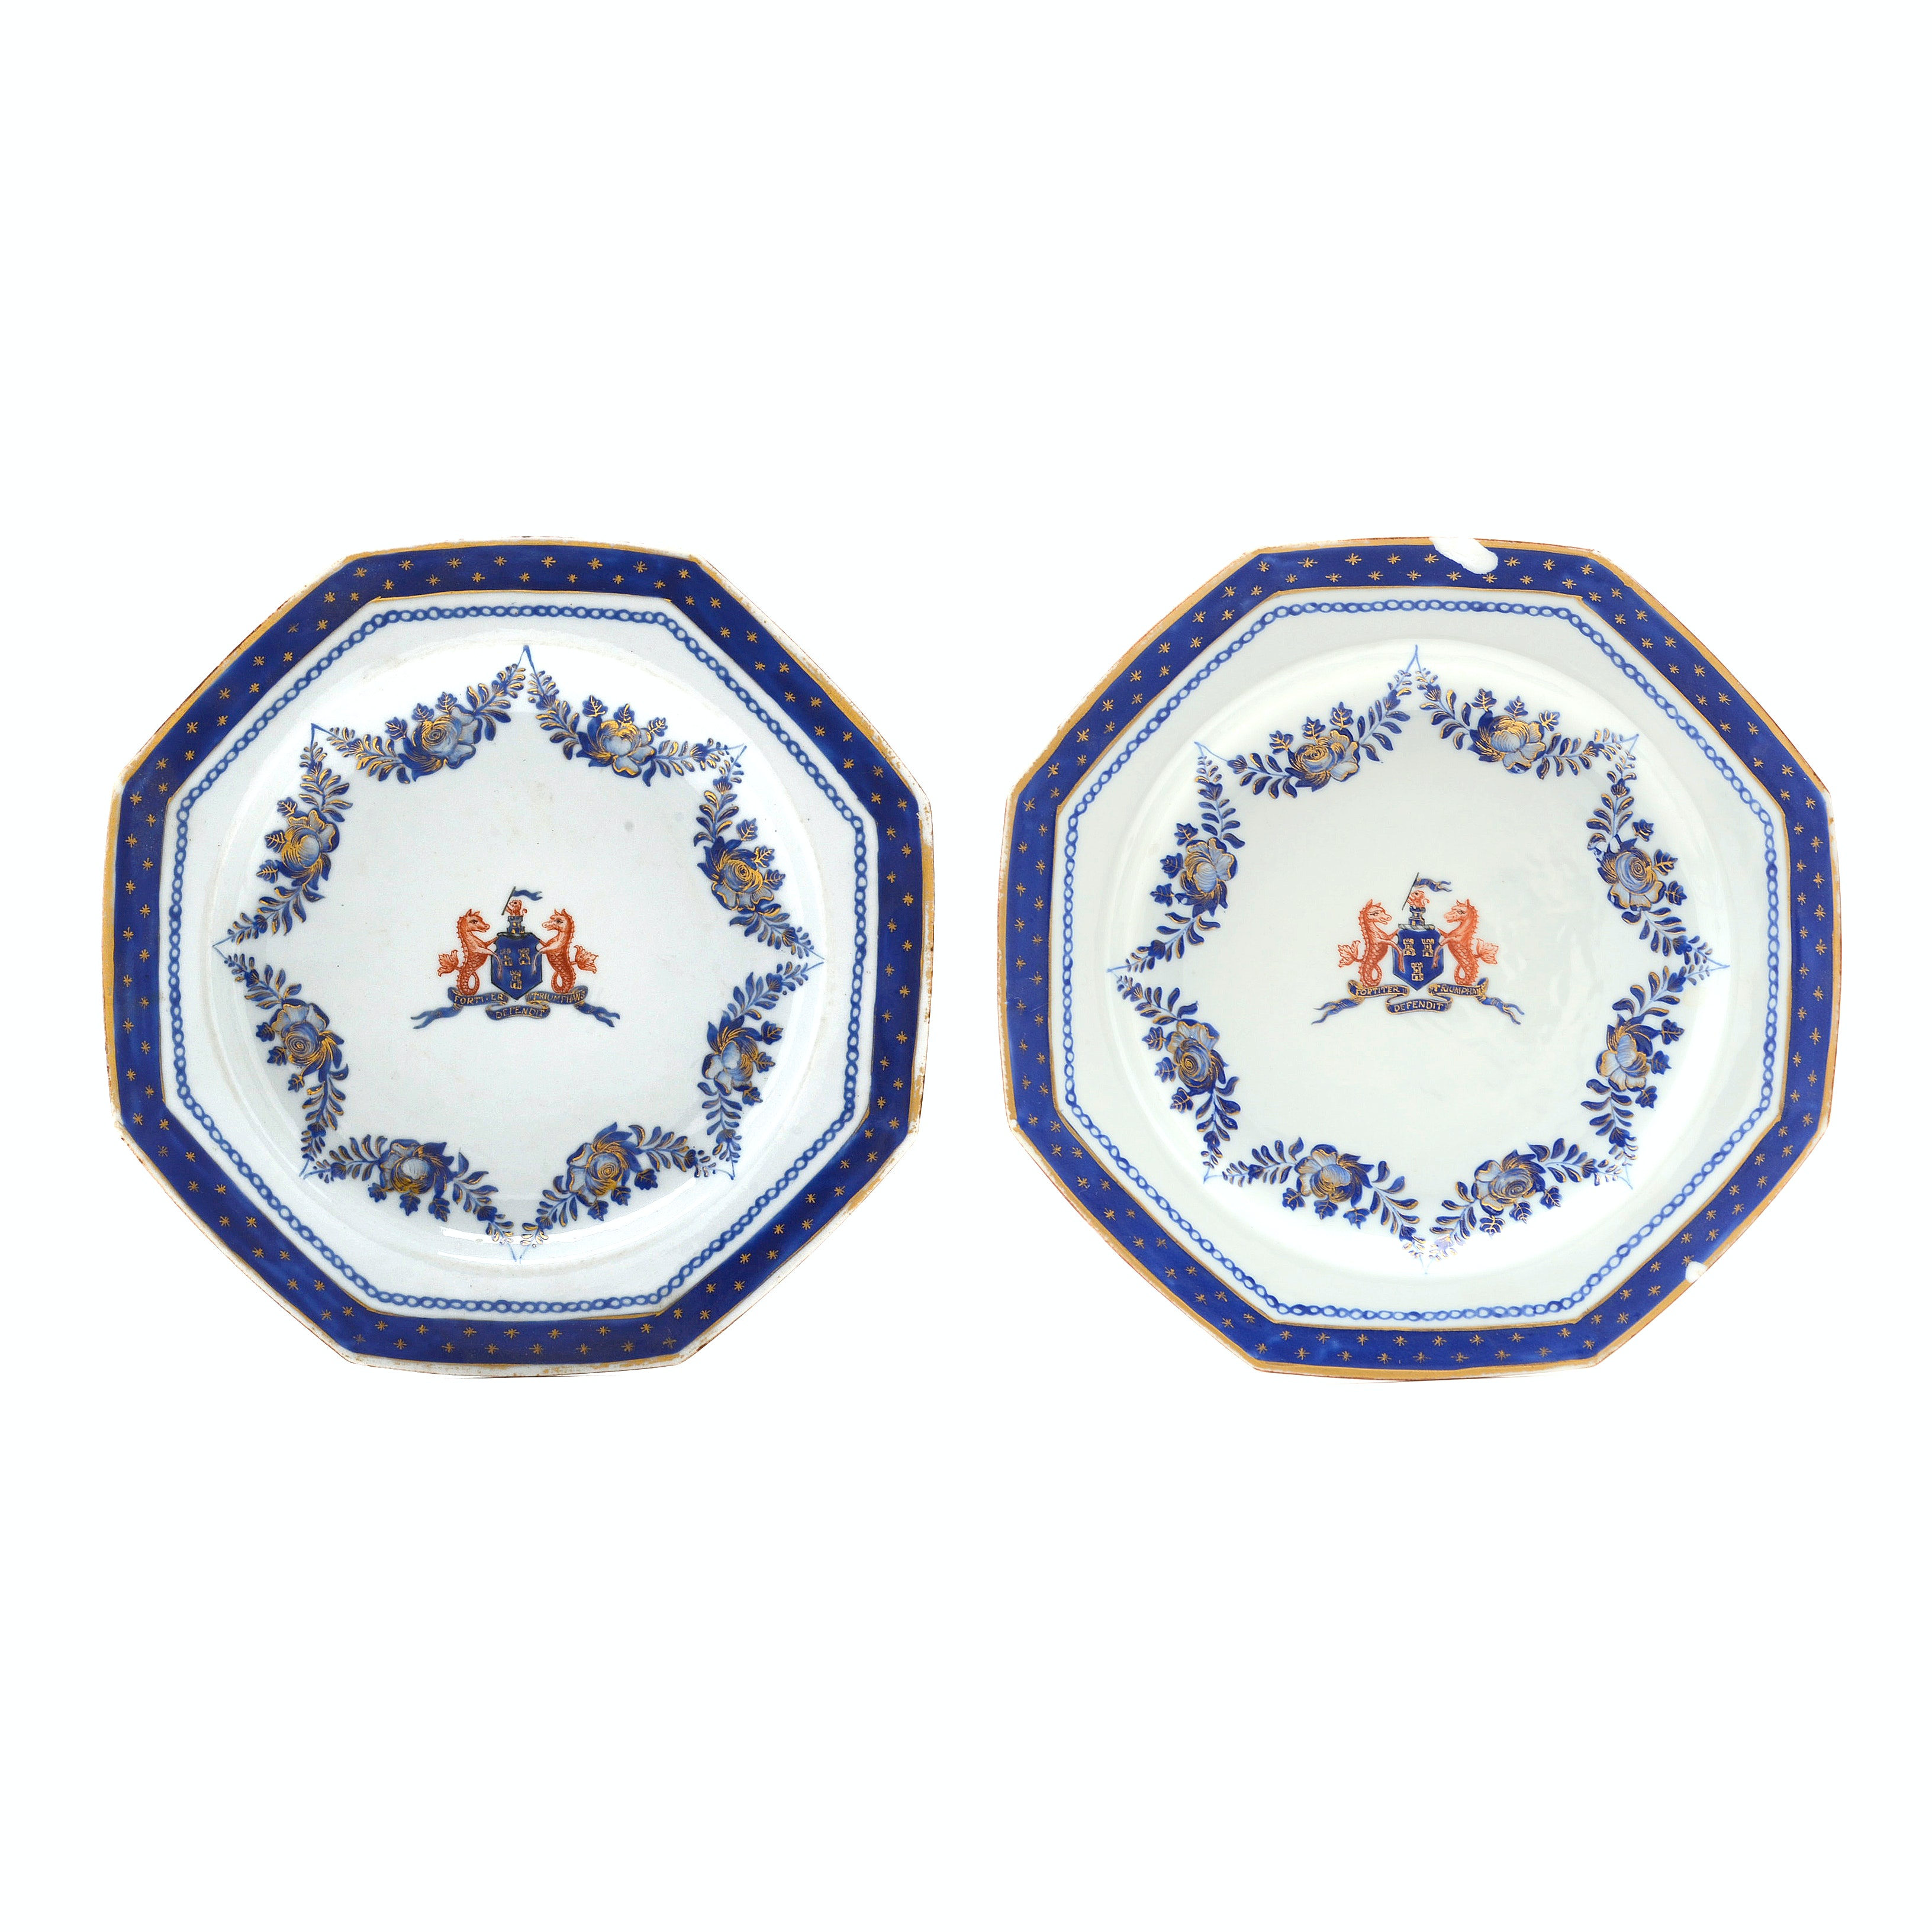 Pair of Chinese Qing Dynasty Newcastle-upon-Tyne Armorial Export Plates